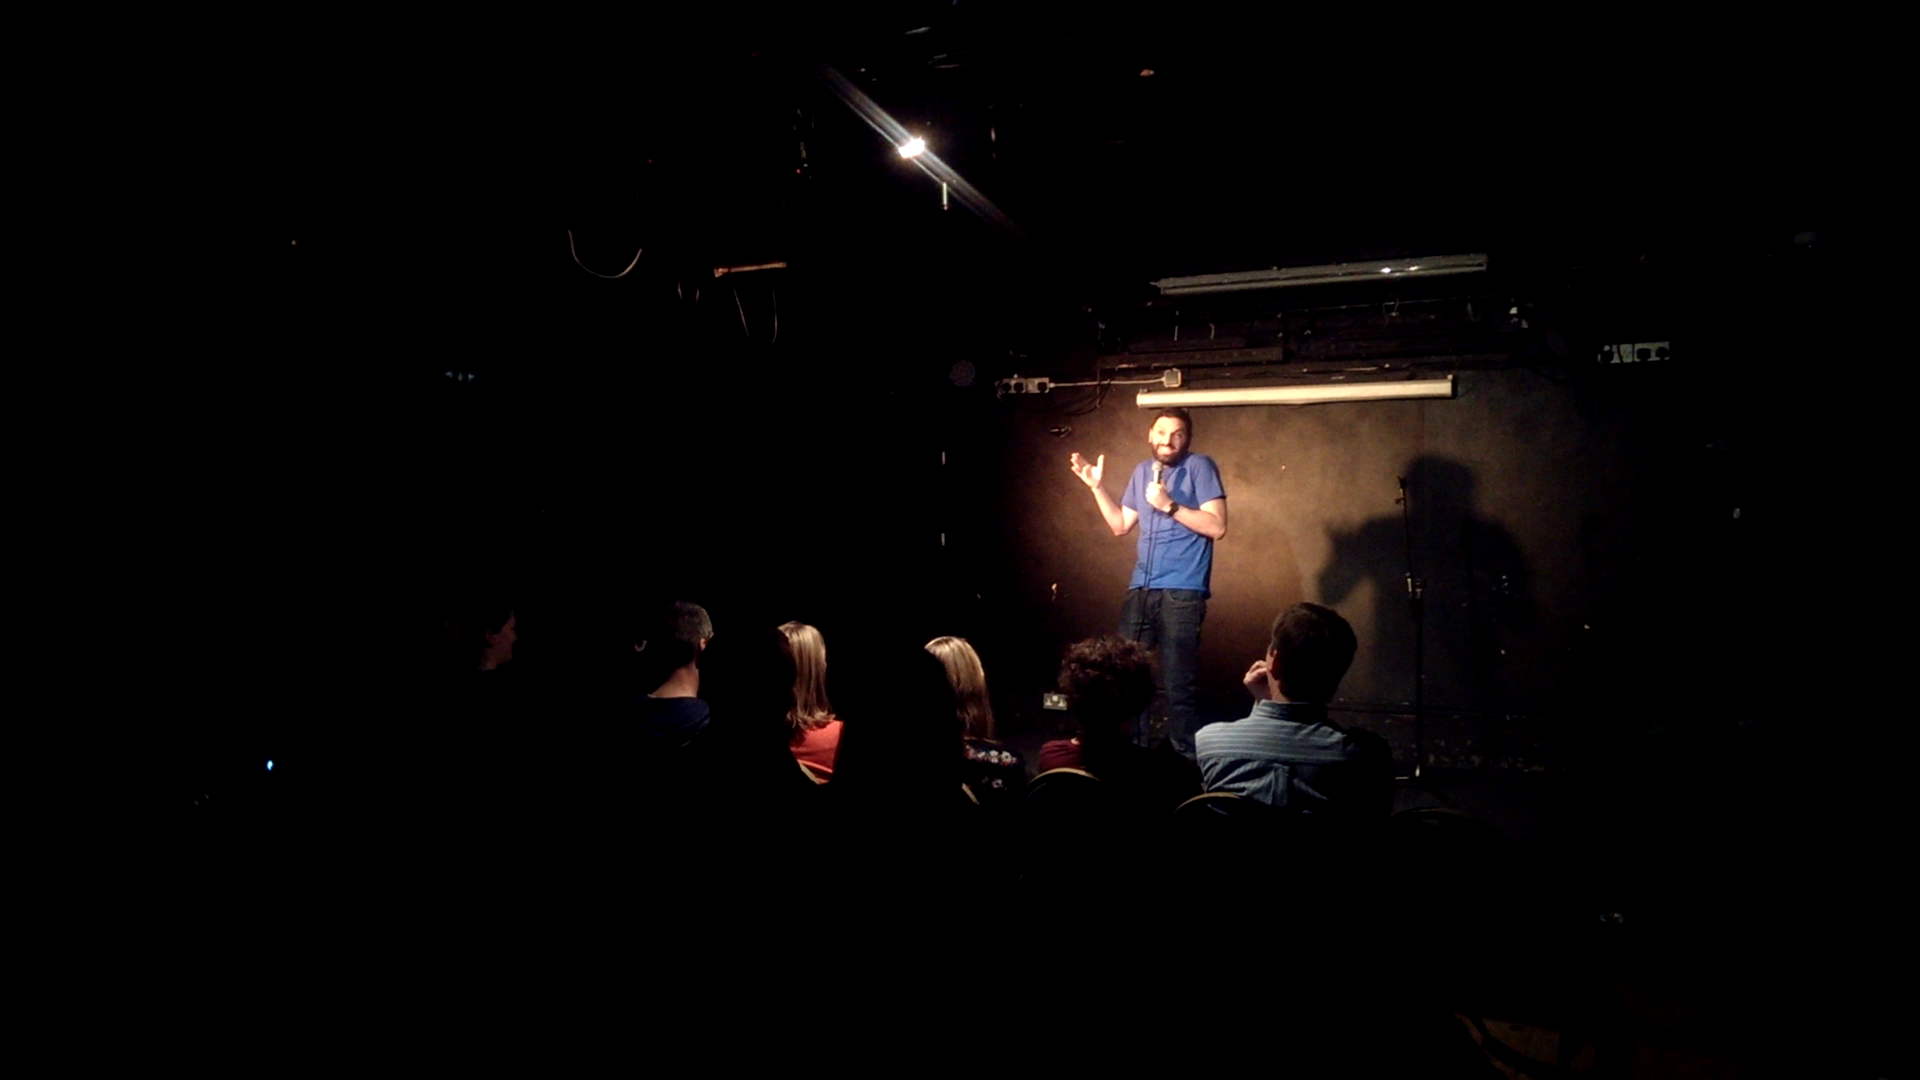 Louie performing stand-up comedy at Hoopla Comedy club photo 2015